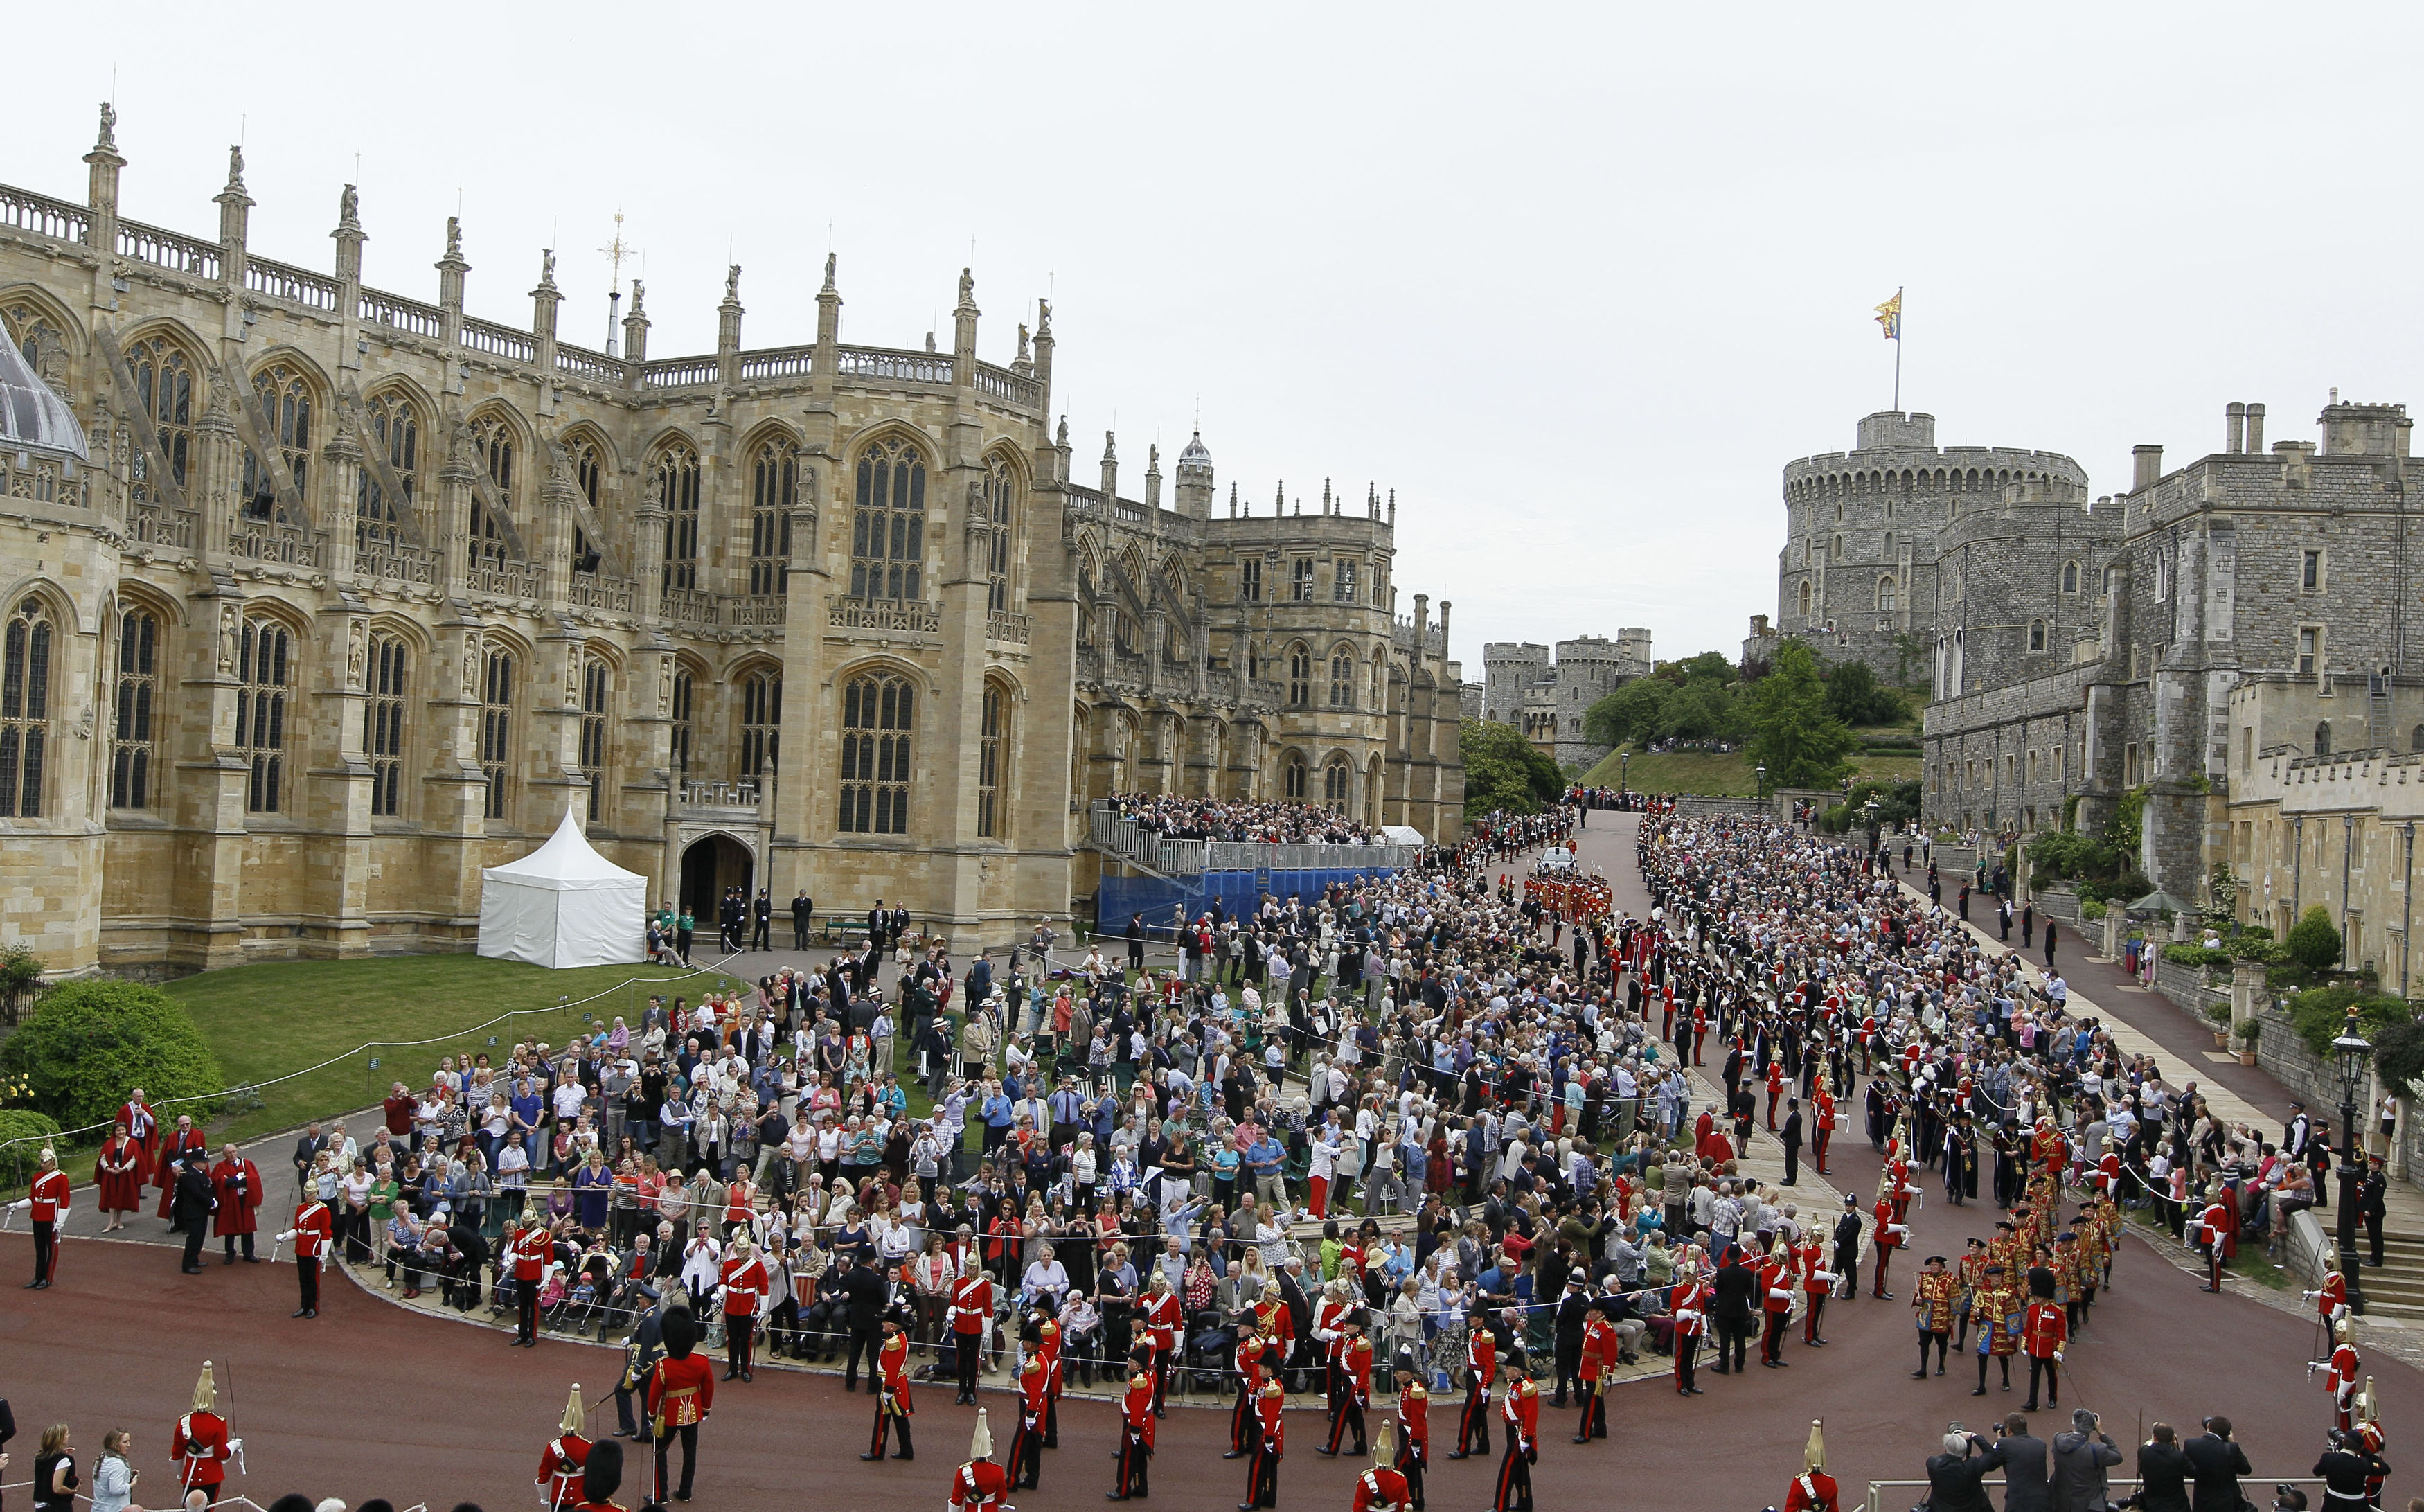 The precincts of Windsor Castle are lined with members of the Armed Forces during Garter Day